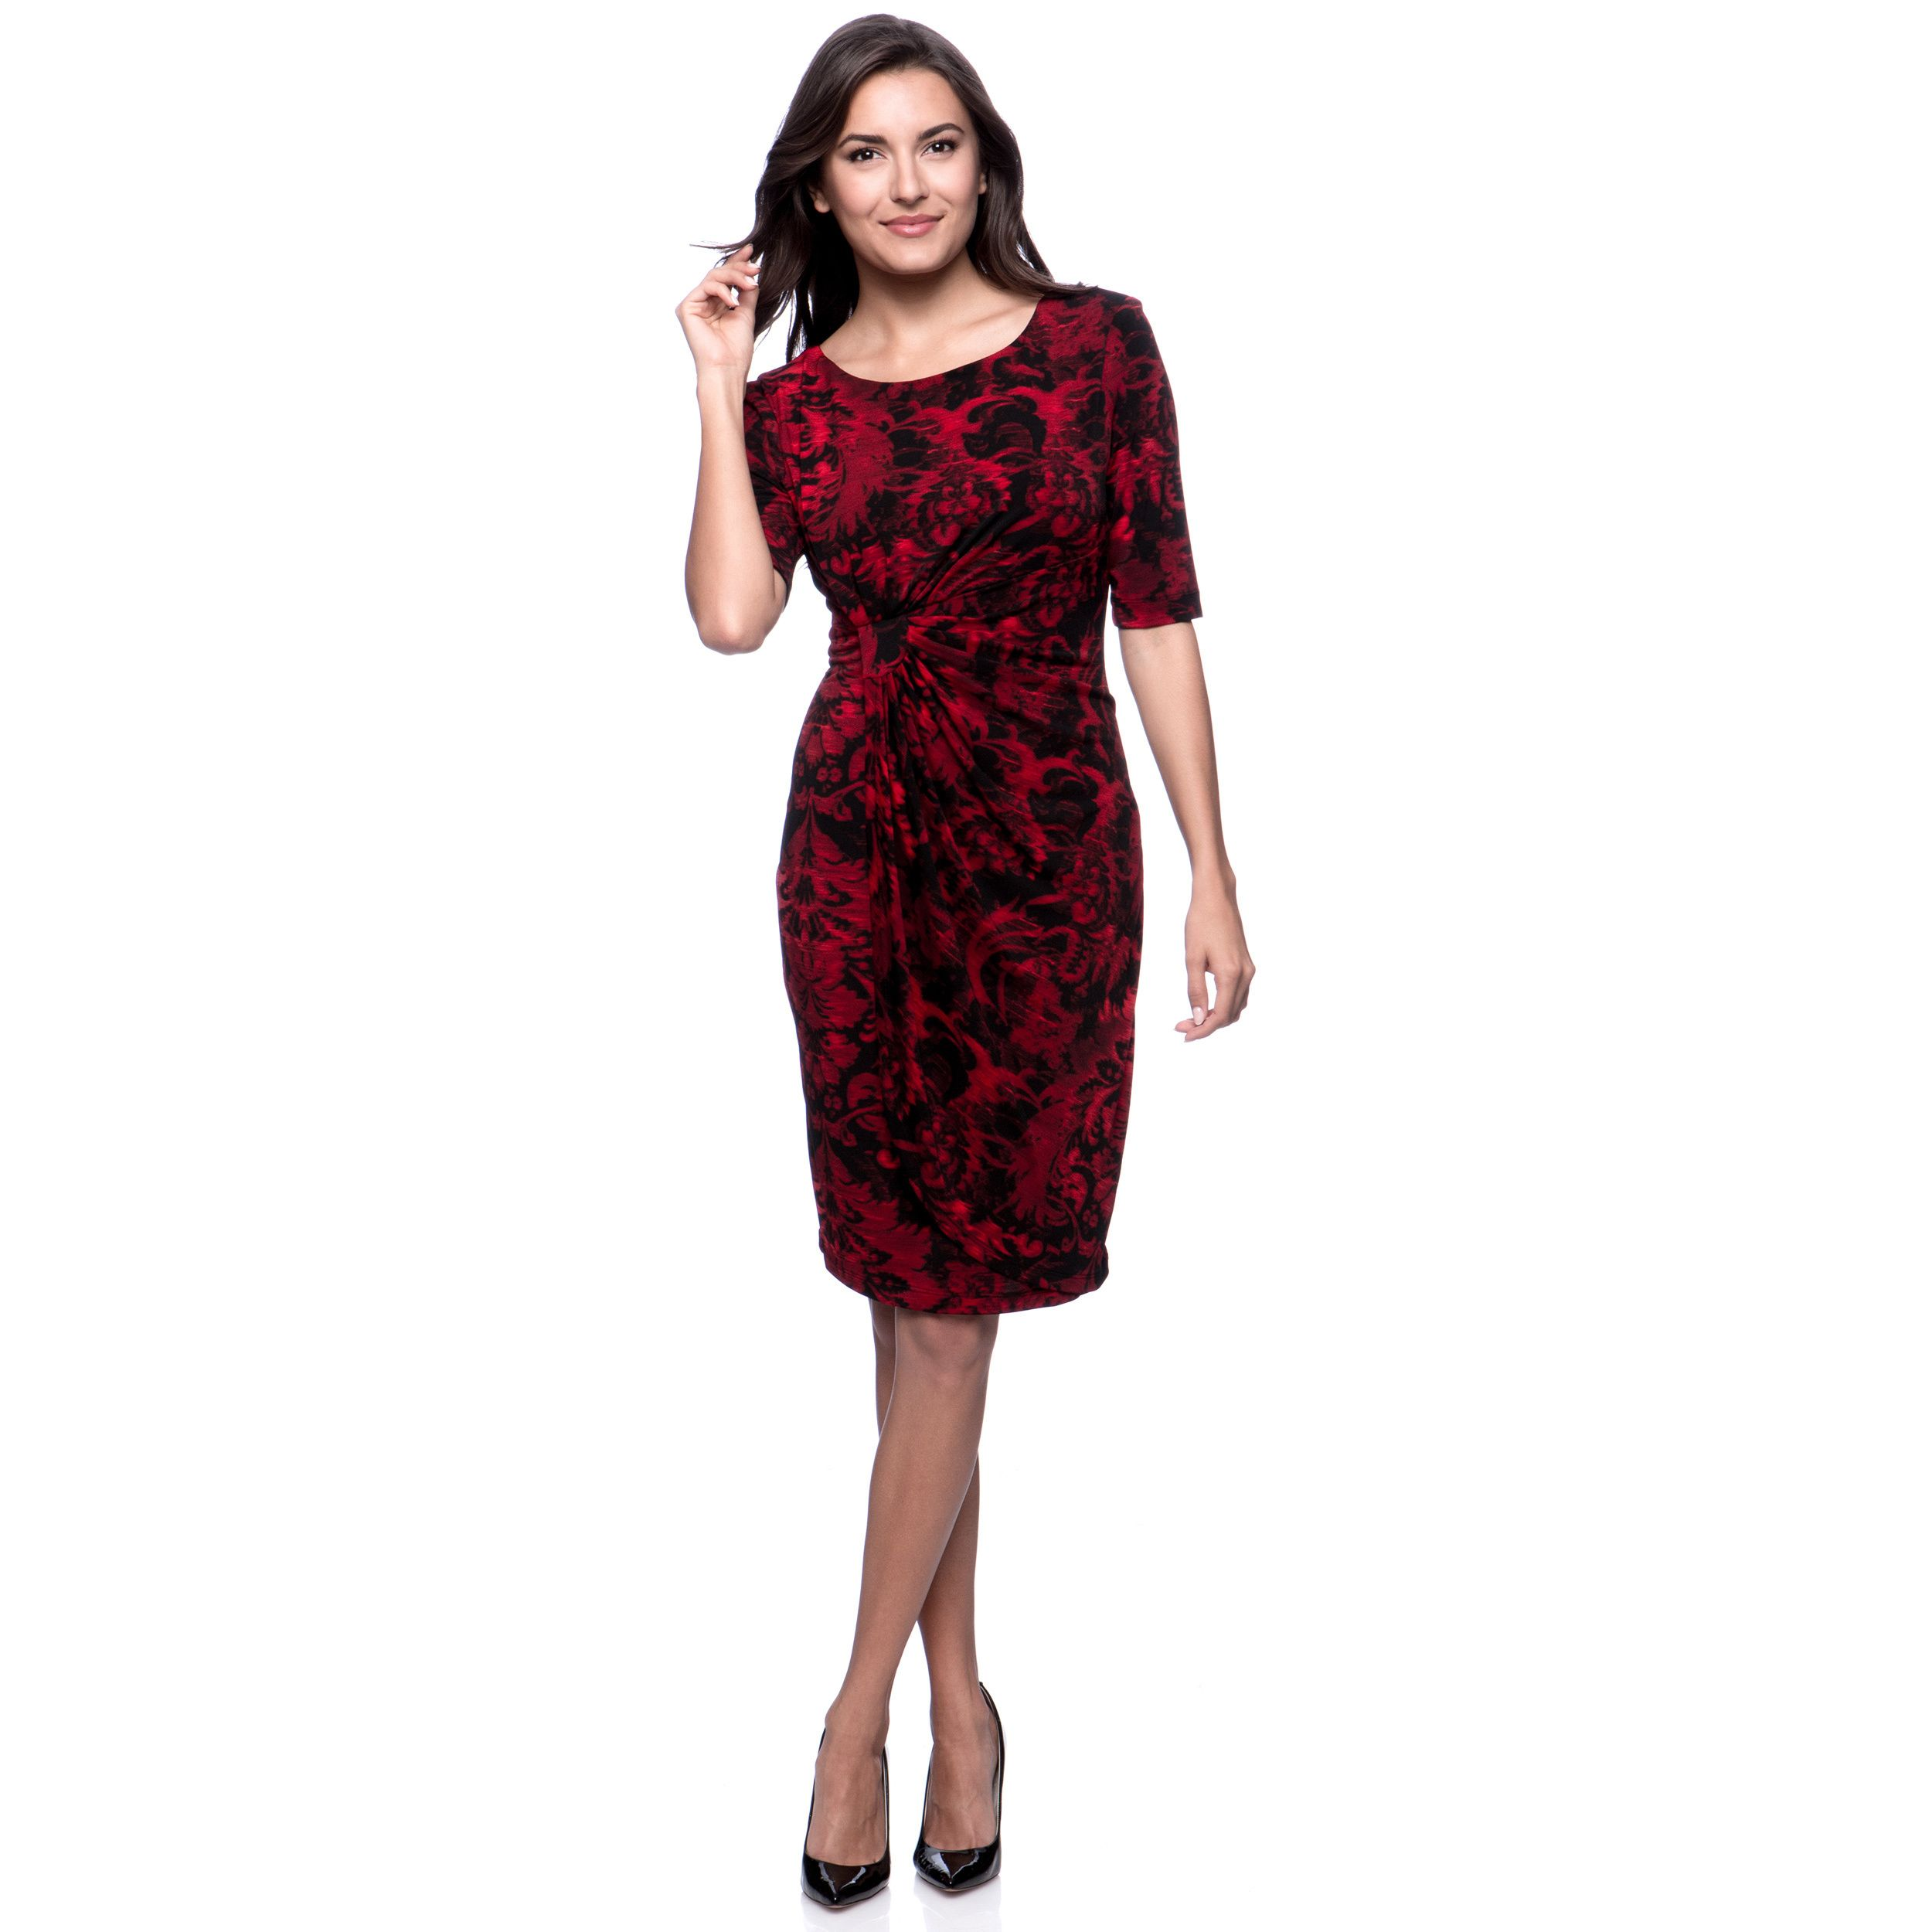 This slenderizing dress from Connected Apparel is designed from a lightweight, flowy material and features a round, boat neck and an abstract damask print. The stylish, elegant look is further completed with 3/4 sleeves and a gathered, faux wrap waist.